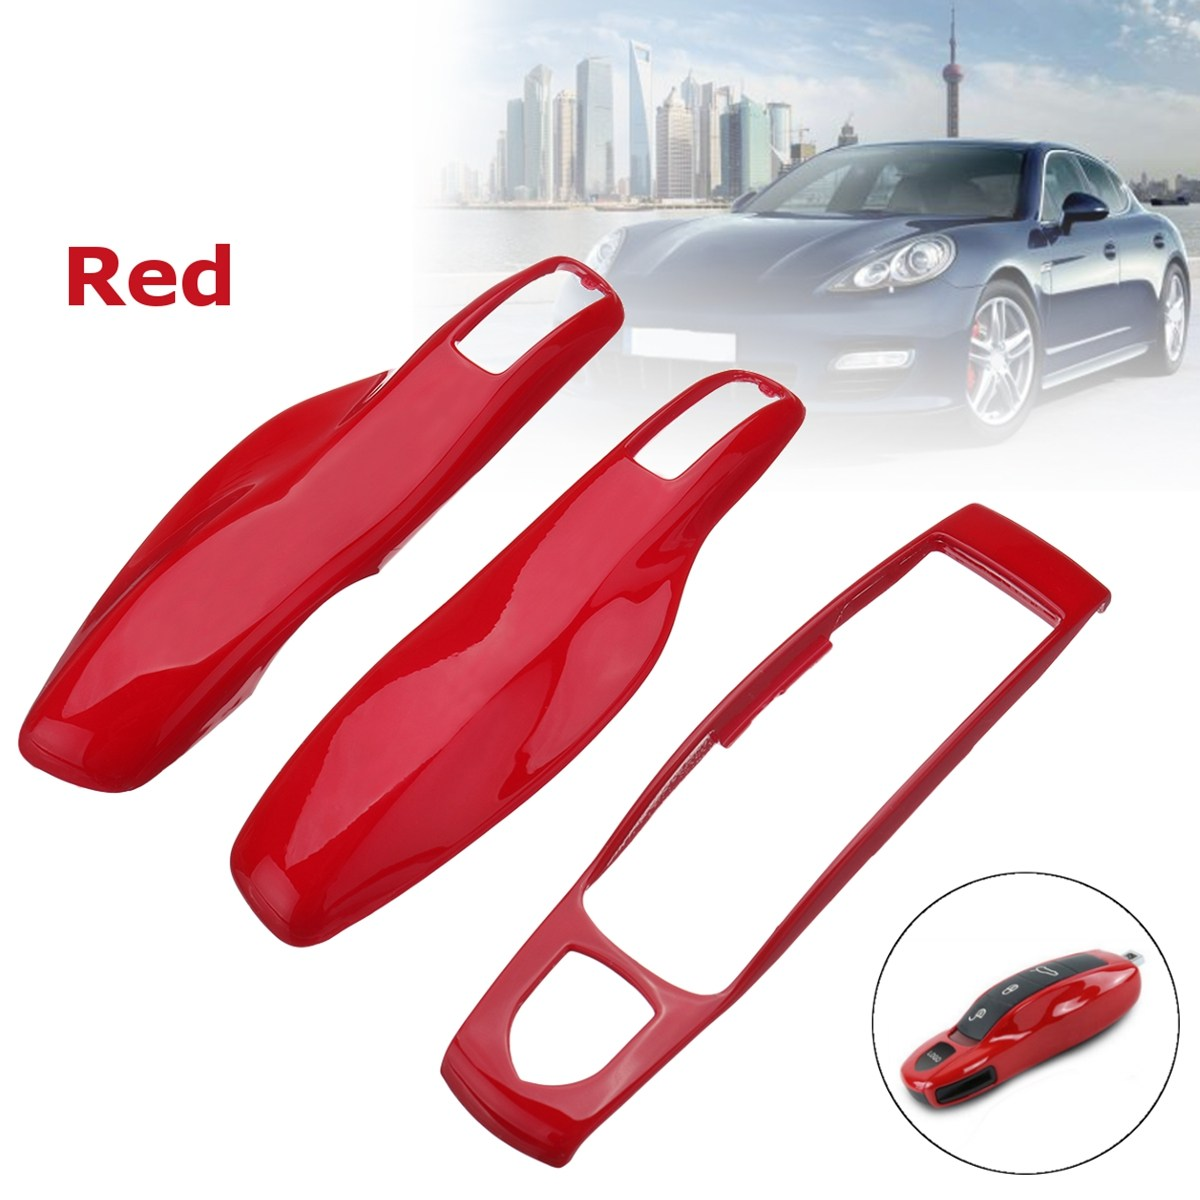 3pc Car Remote Key Case Fob Covers Set For Porsche/Panamera/Spyder/Carrera Macan Boxster Cayman Cayenne 911 970 981 991 92A 2013 колпаки porsche 911 panamera macan